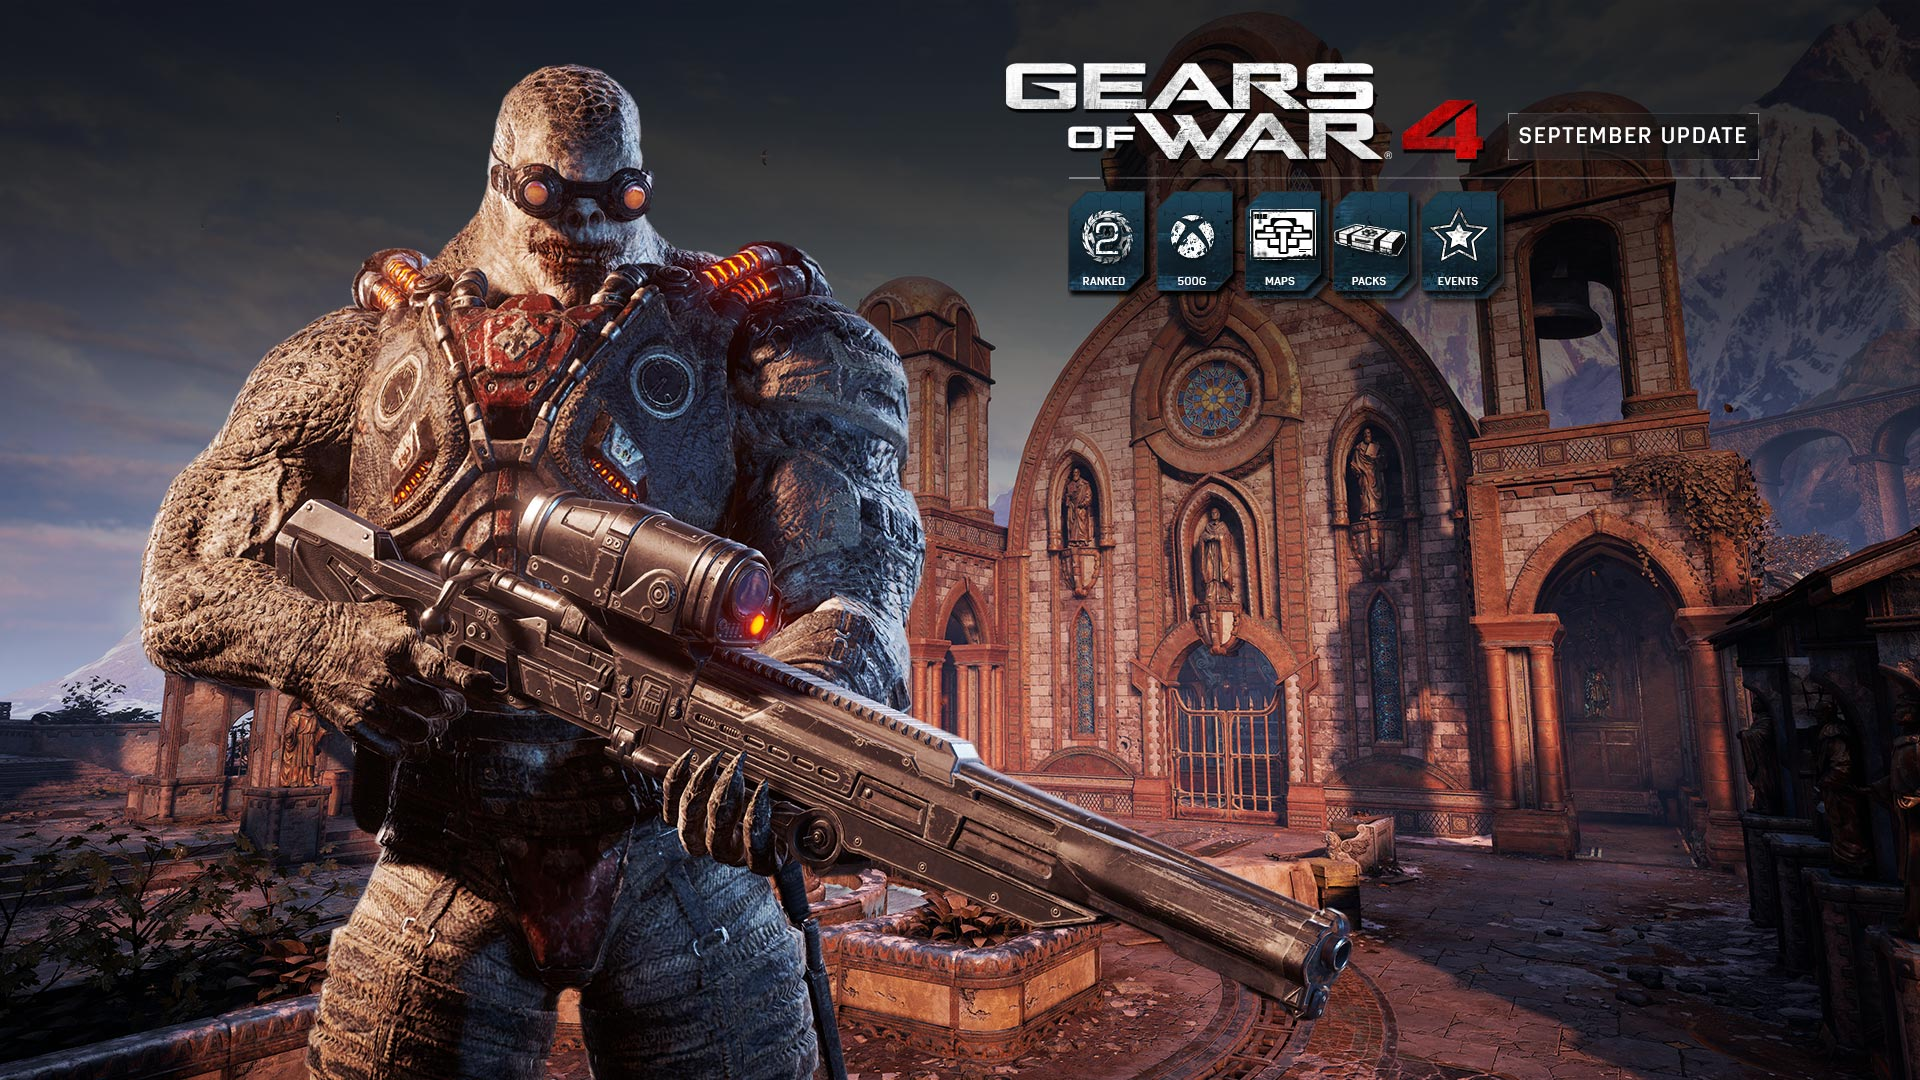 Gears of War 4 - September Update | Community | Gears of War ... on modern warfare 2 map list, left 4 dead map list, wolfenstein map list, call of duty black ops 2 map list, battlefield bad company 2 map list, titanfall map list, just cause 2 map list, rainbow six vegas map list, team fortress 2 map list, halo map list, battlefield 3 map list, modern warfare 3 map list, doom 3 map list, minecraft map list, borderlands 2 map list, red orchestra 2 map list, cod black ops map list, destiny map list, metal gear solid map list, gears of war 1 map list,